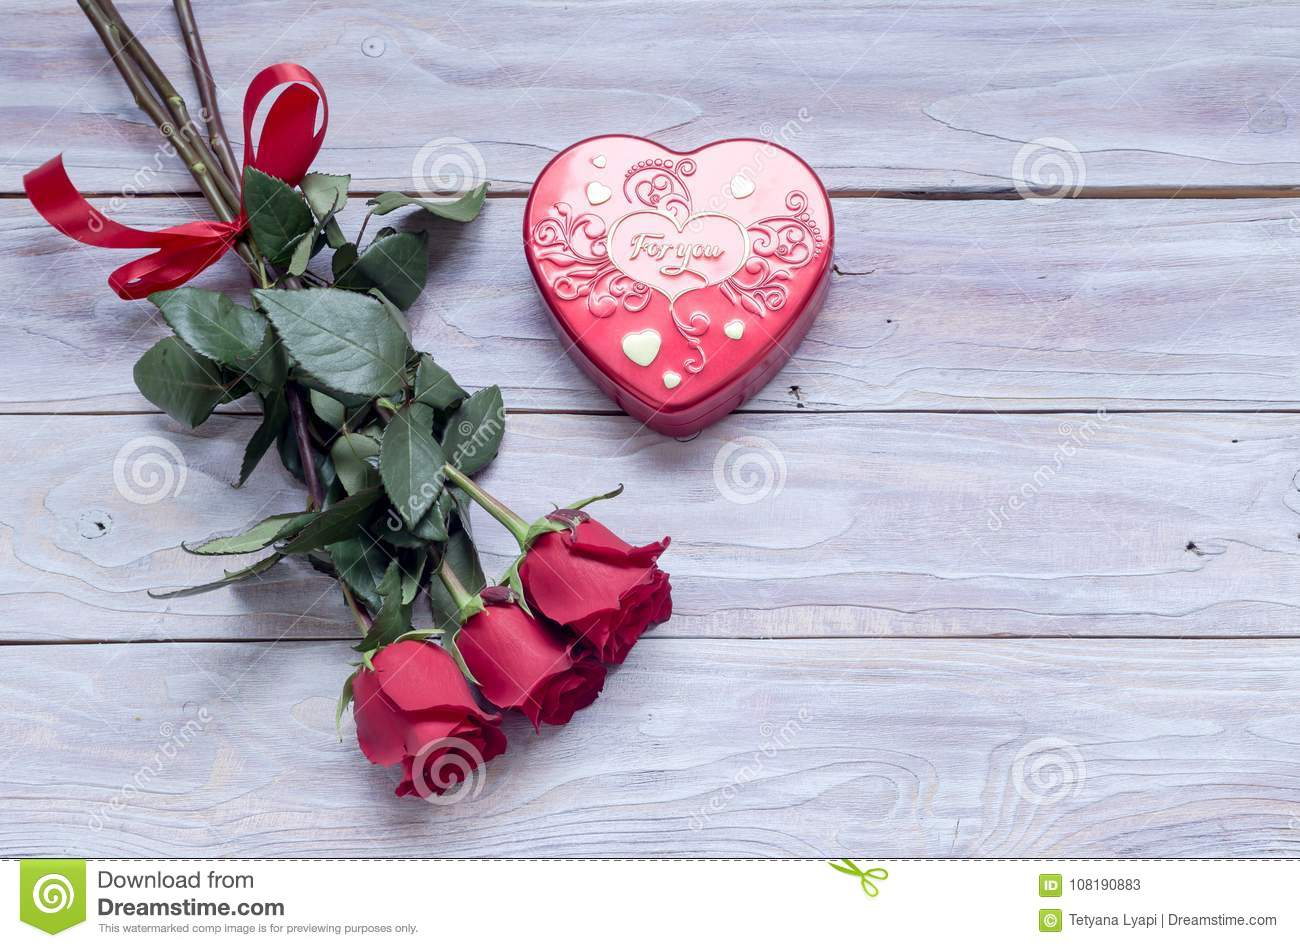 Romantic bouquet of red roses and box with candies stock image download romantic bouquet of red roses and box with candies stock image image of decor izmirmasajfo